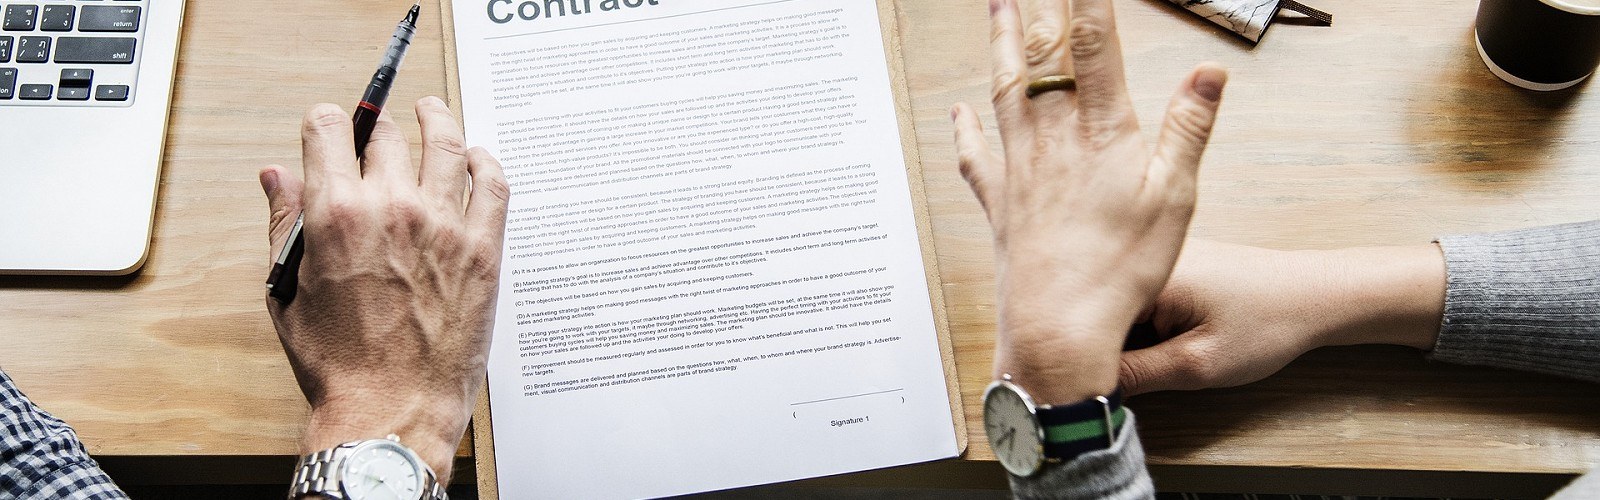 Contract document (pixabay)